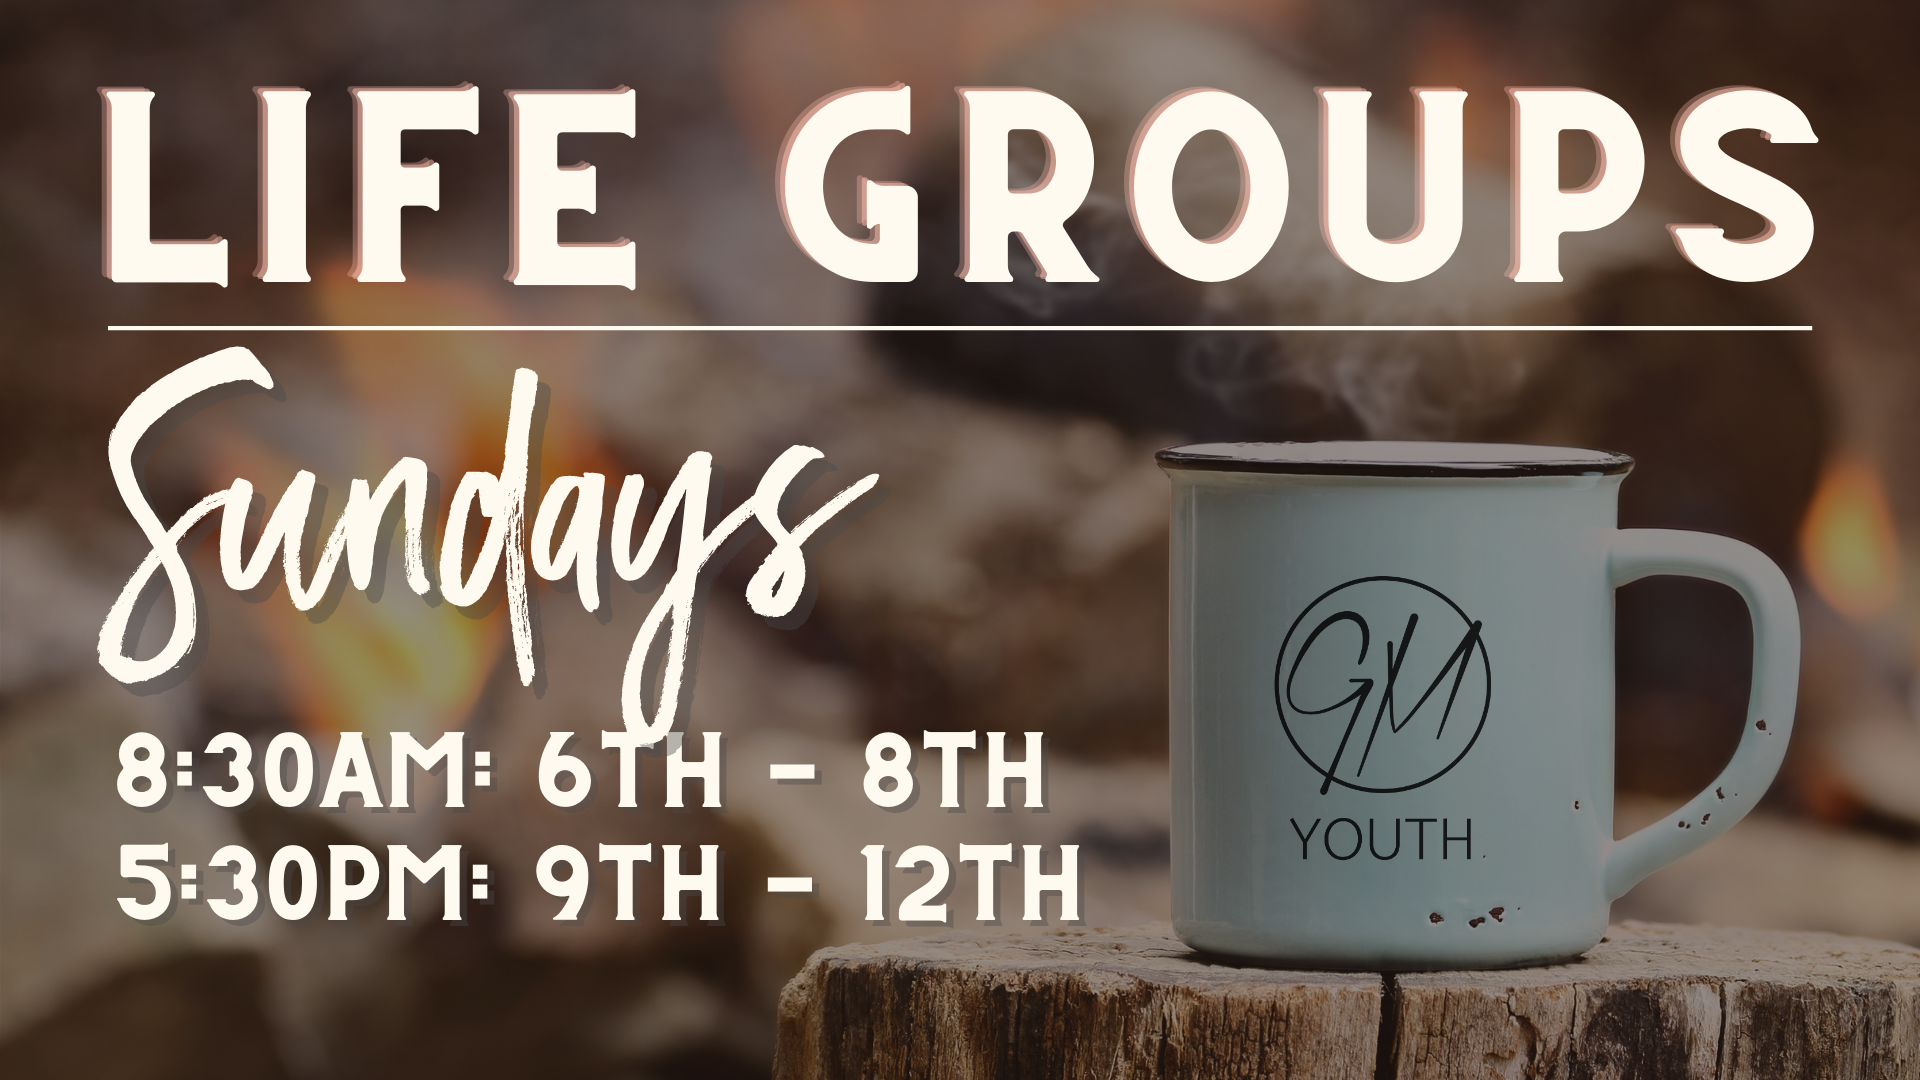 GM Youth - Life Groups